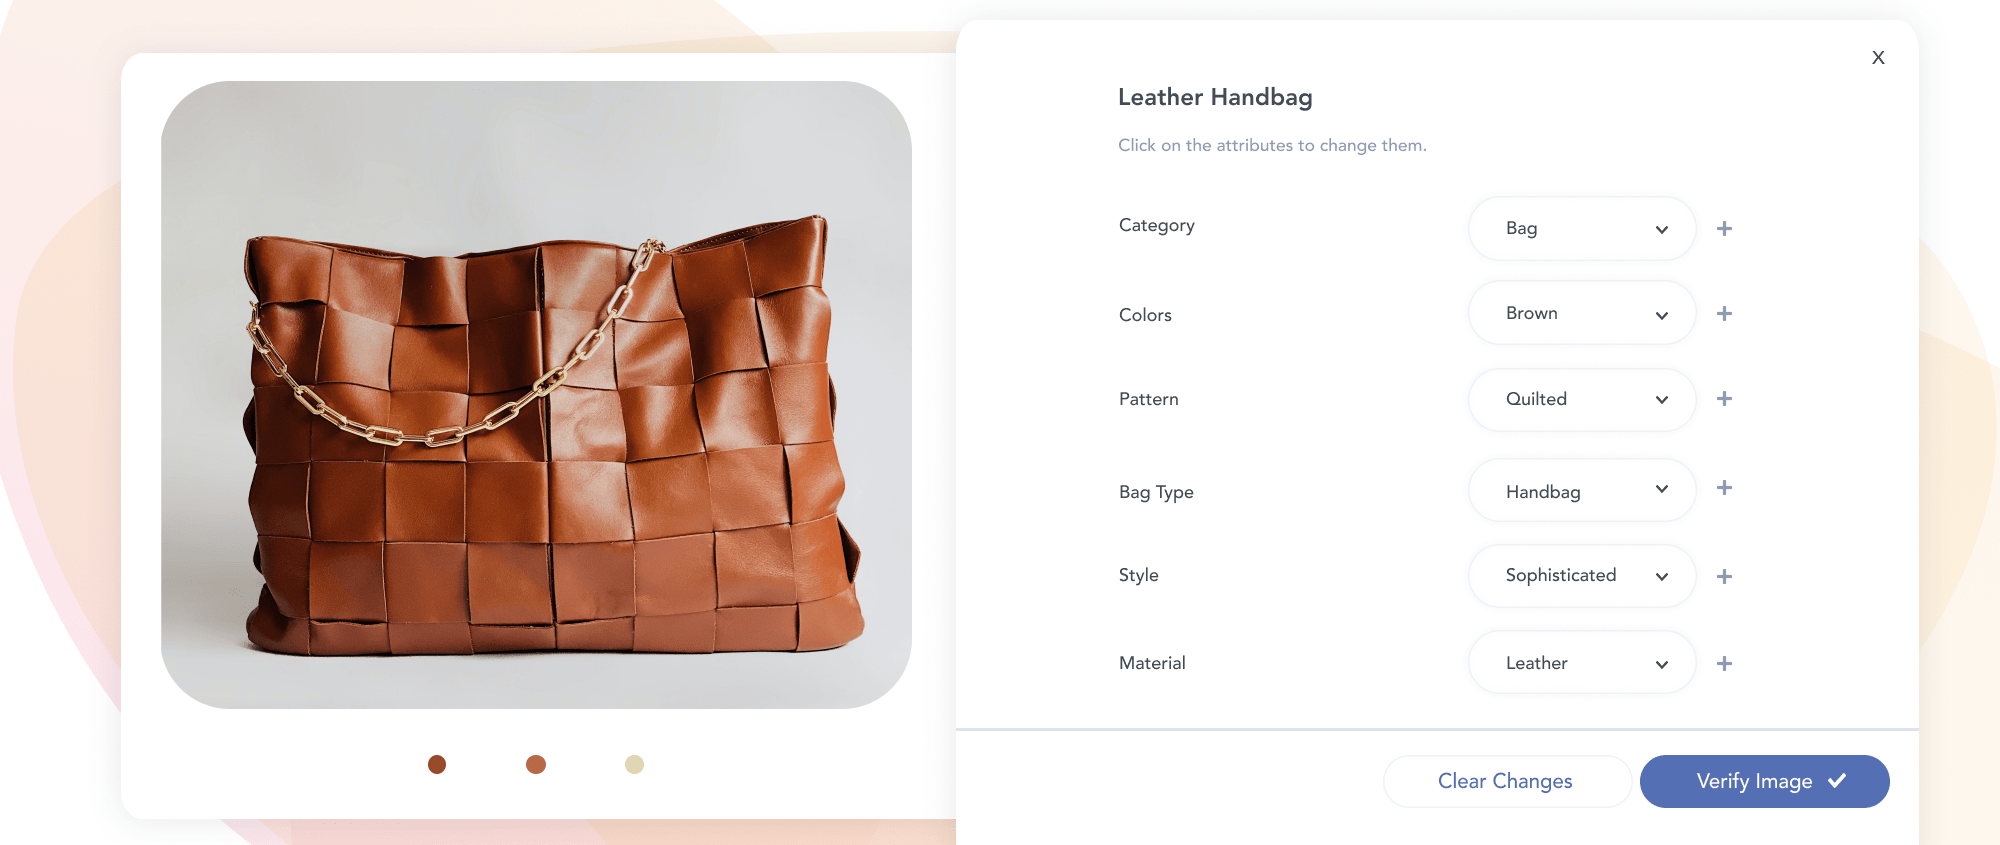 Automatically generated tags for a brown handbag